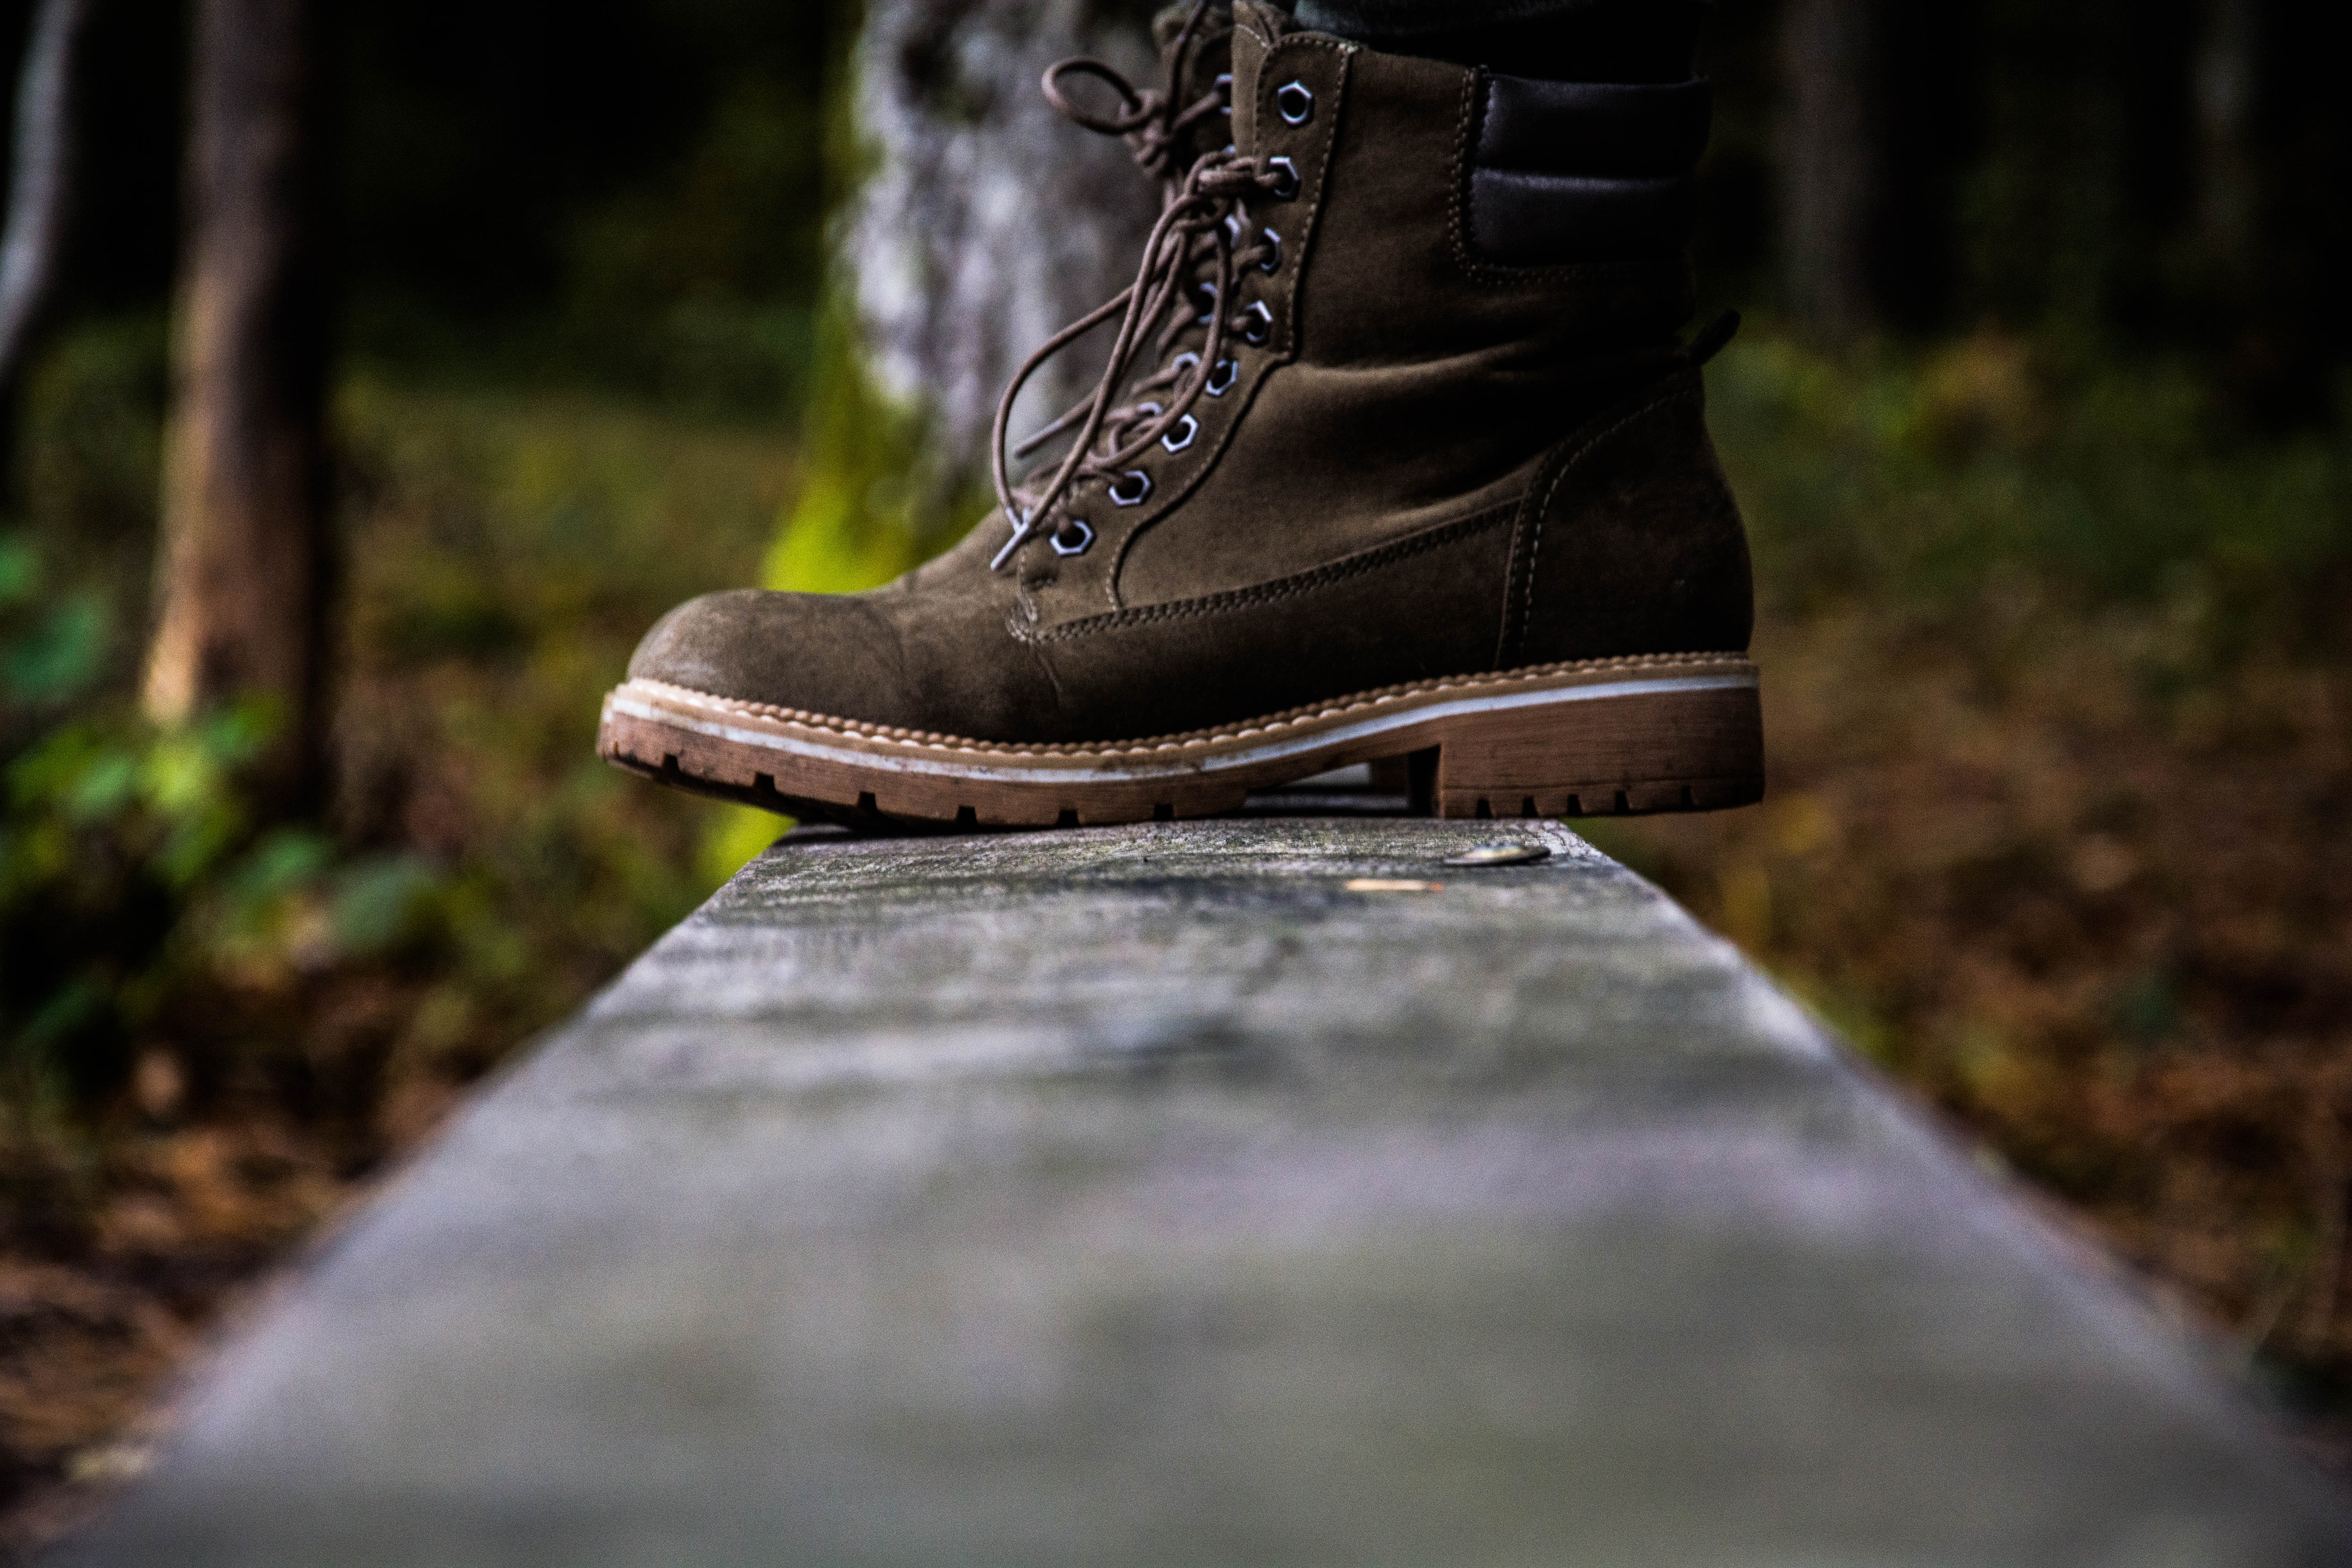 low angle photo of pair of brown suede work boots